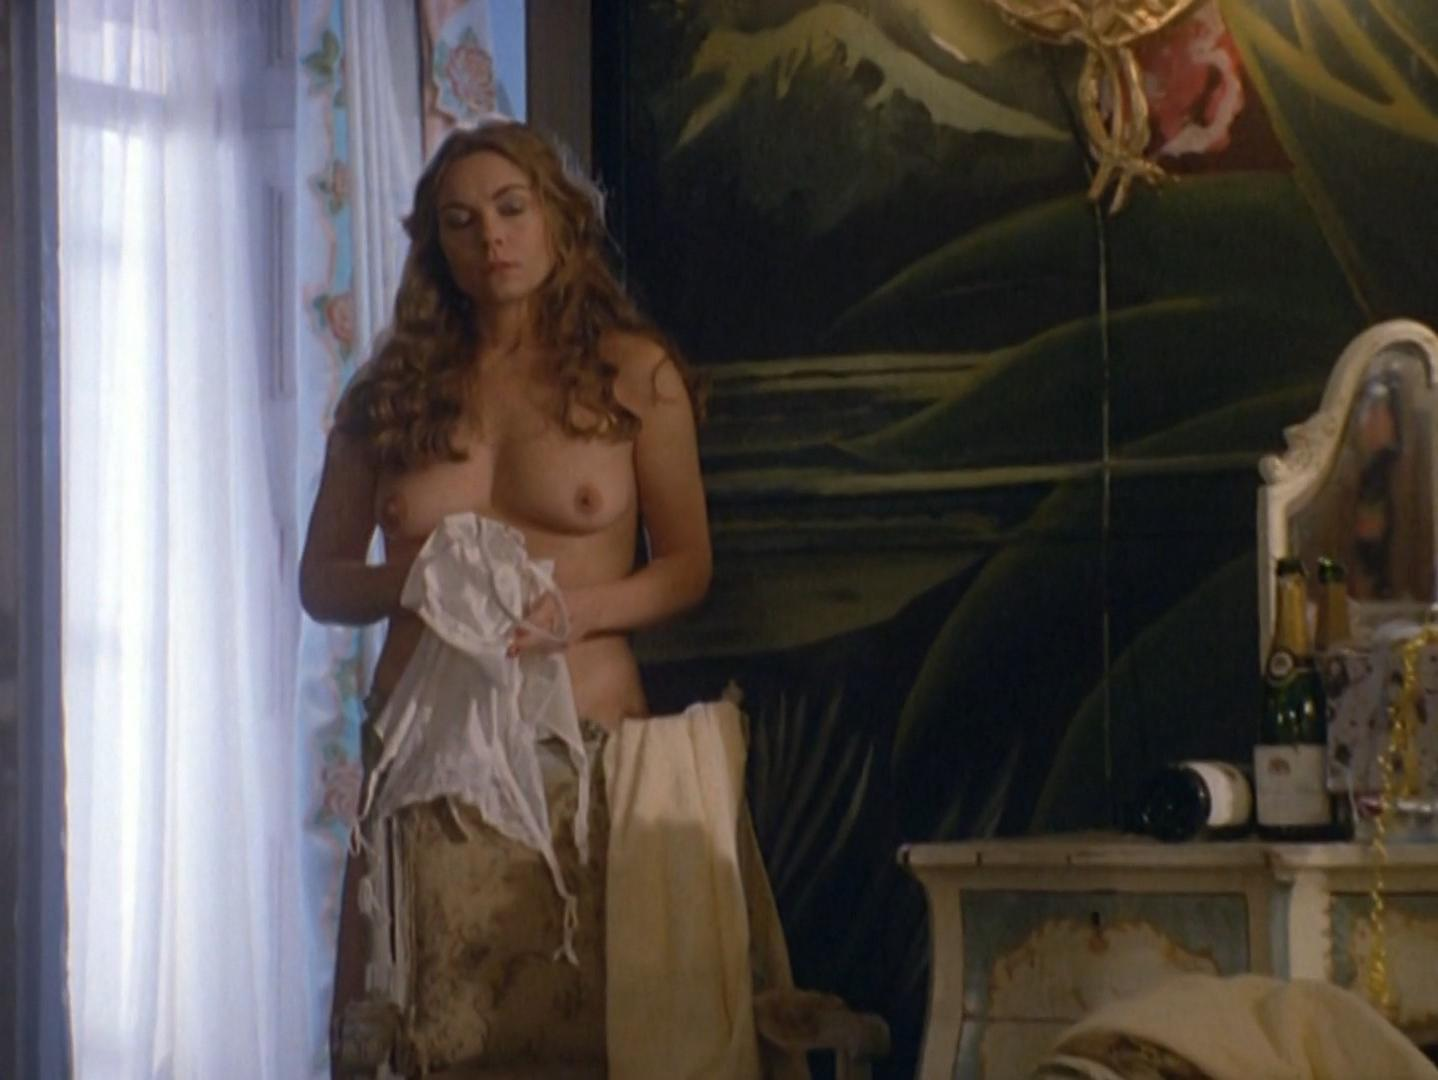 Theresa Russell nude - Hotel Paradise (1995)